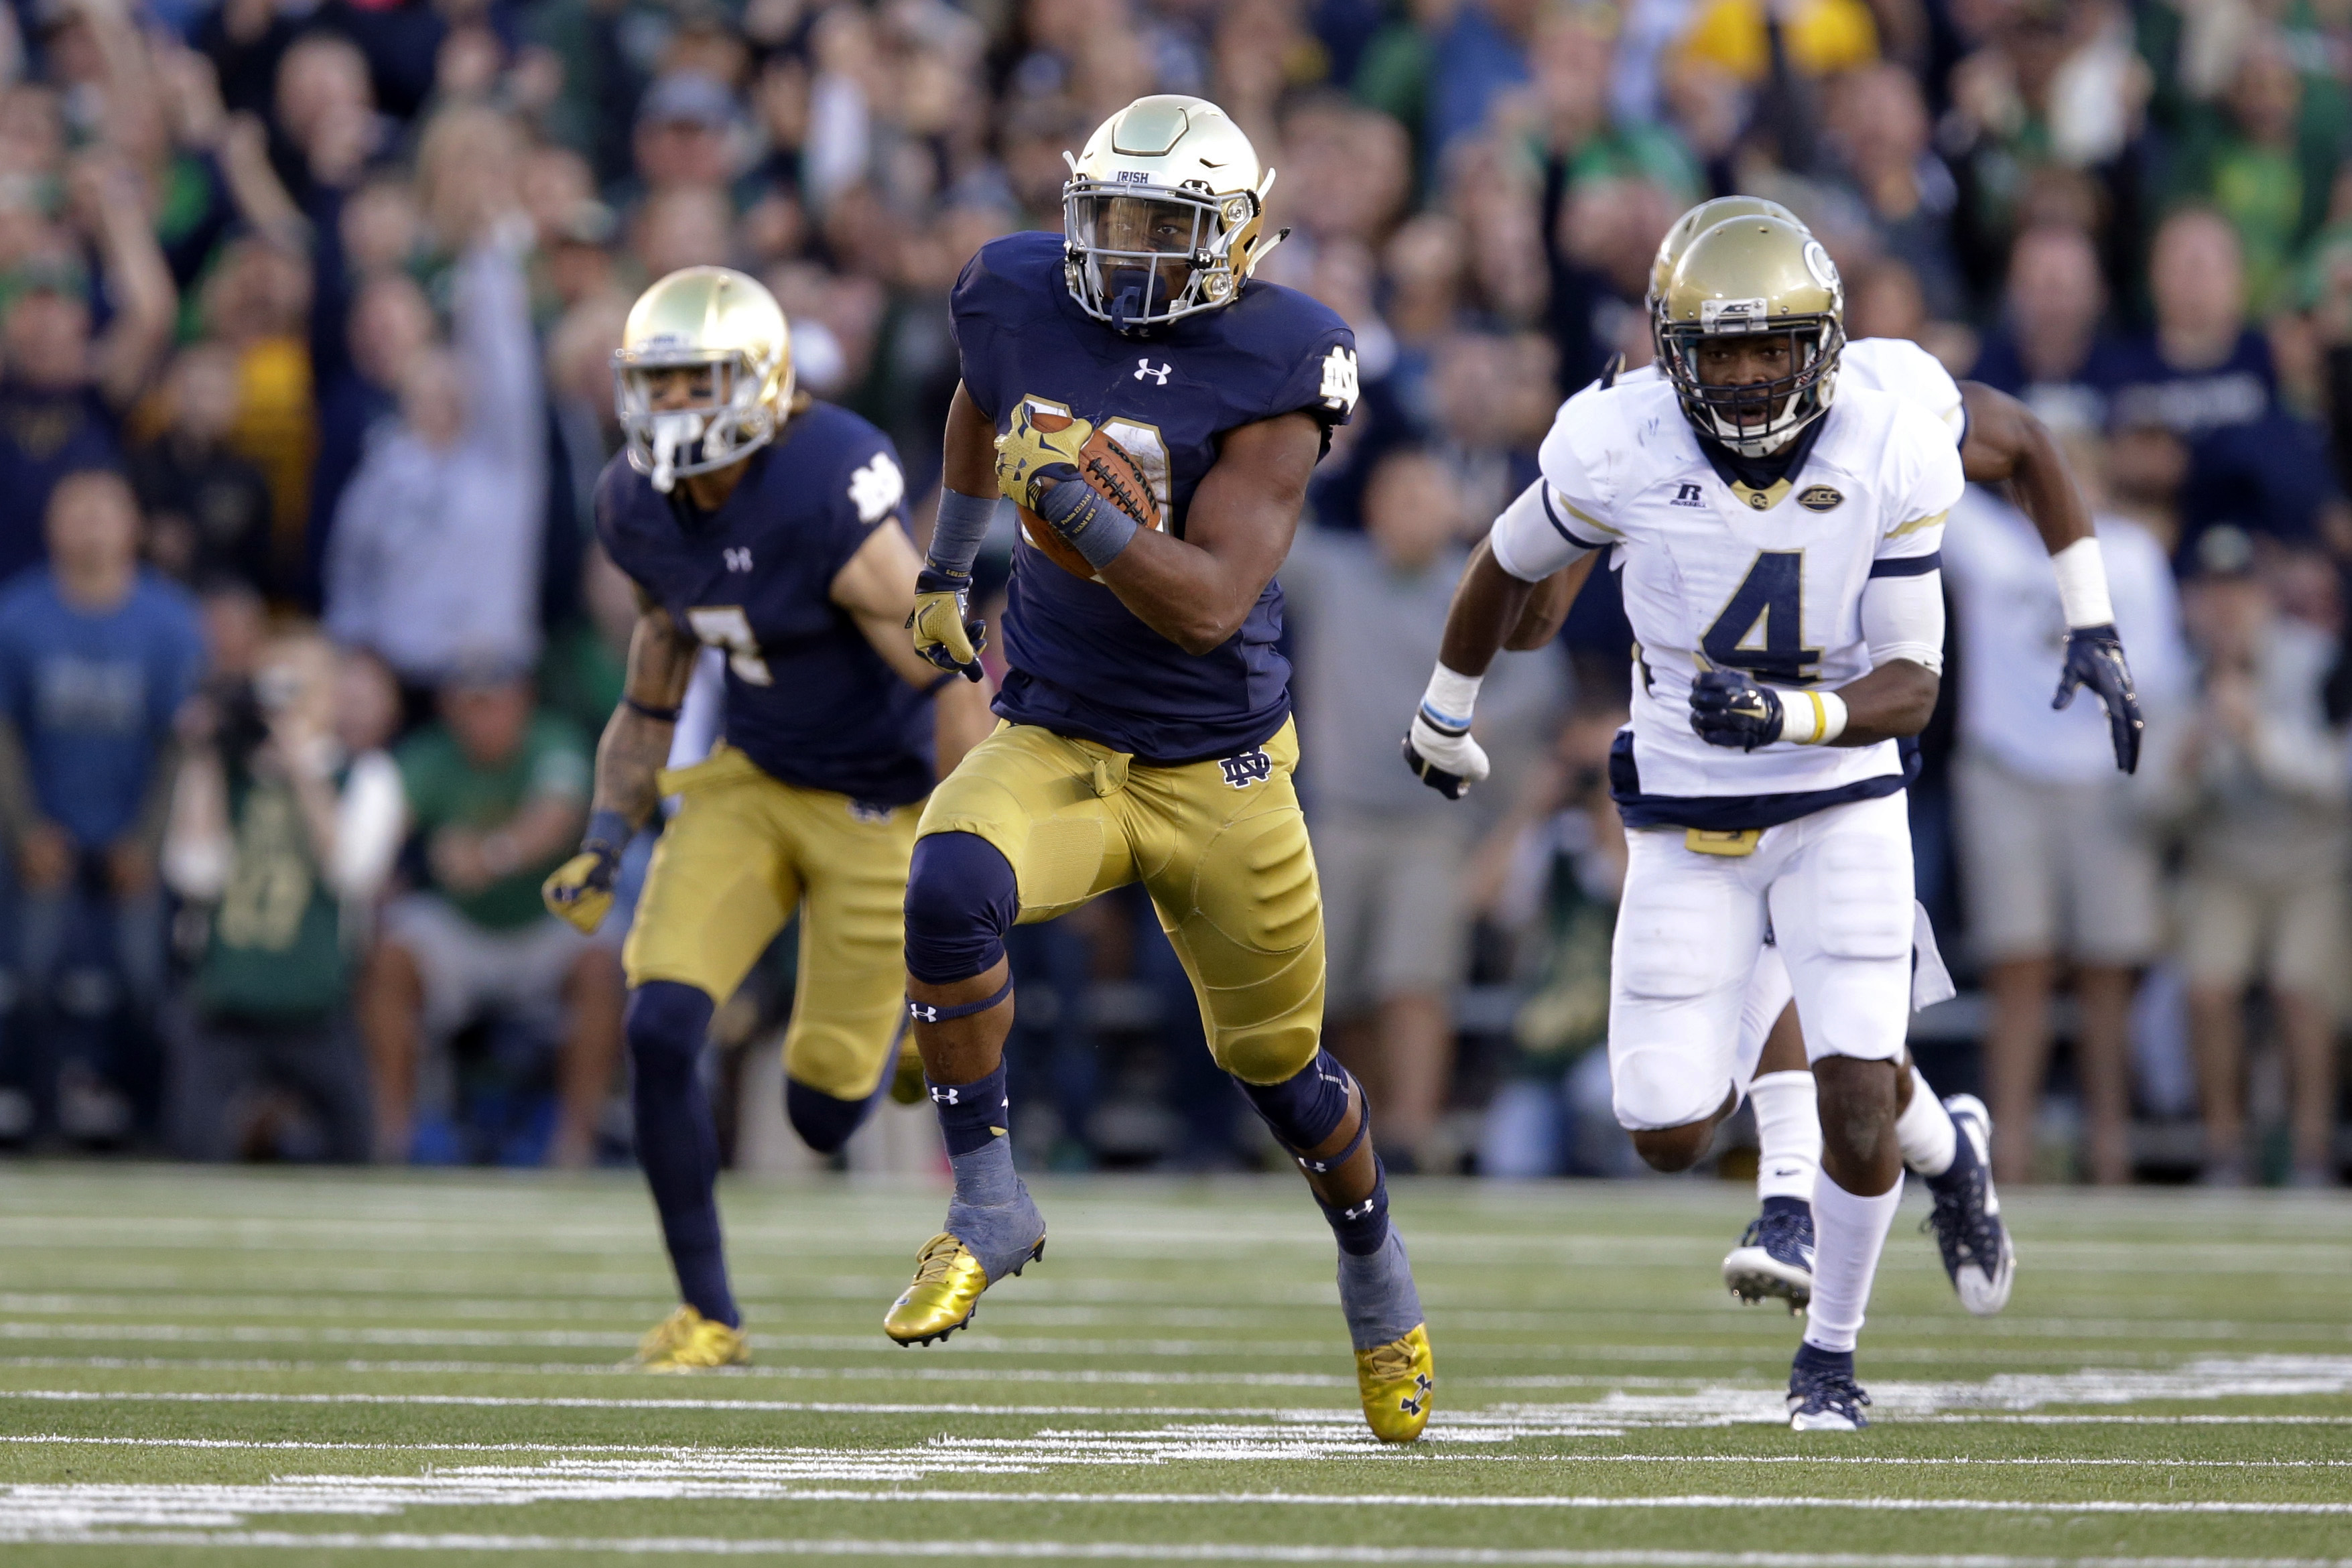 Notre Dame running back C.J. Prosise (20) runs past Georgia Tech defensive back Jamal Golden (4) for a touchdown during the second half of an NCAA college football game in South Bend, Ind., Saturday, Sept. 19, 2015. Notre Dame defeated Georgia Tech 30-22.